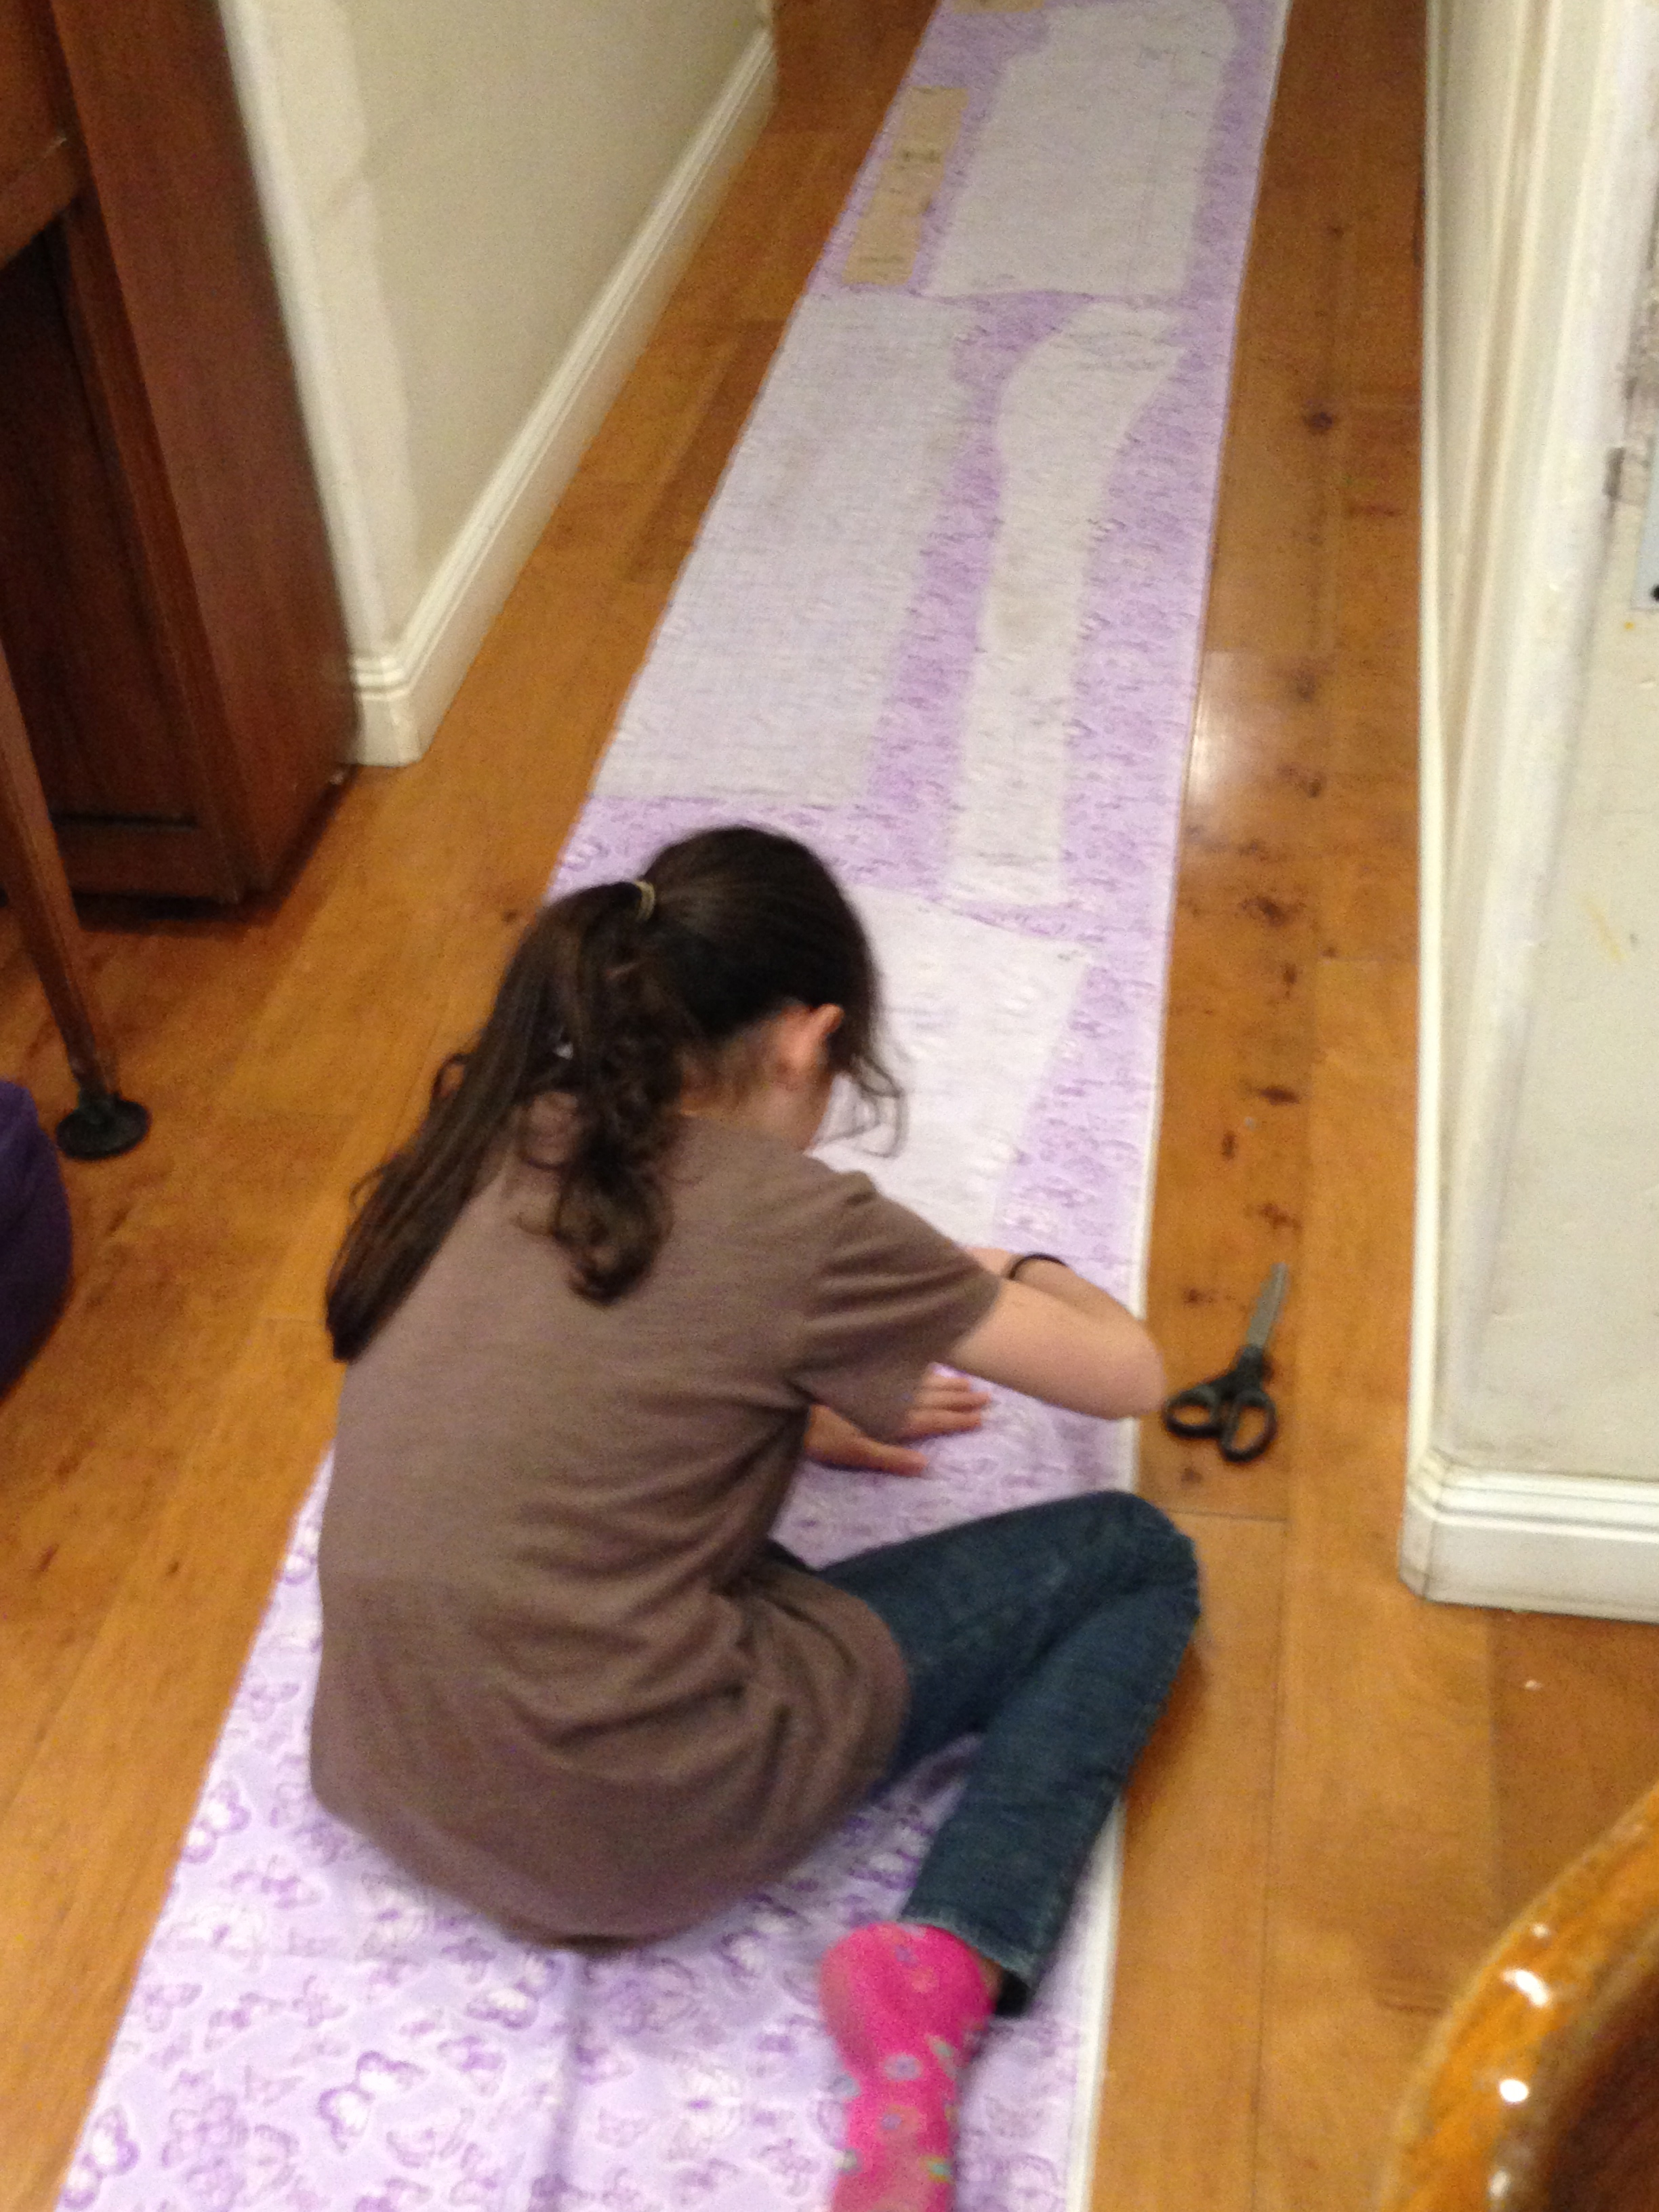 Cutting fabric for her robe.